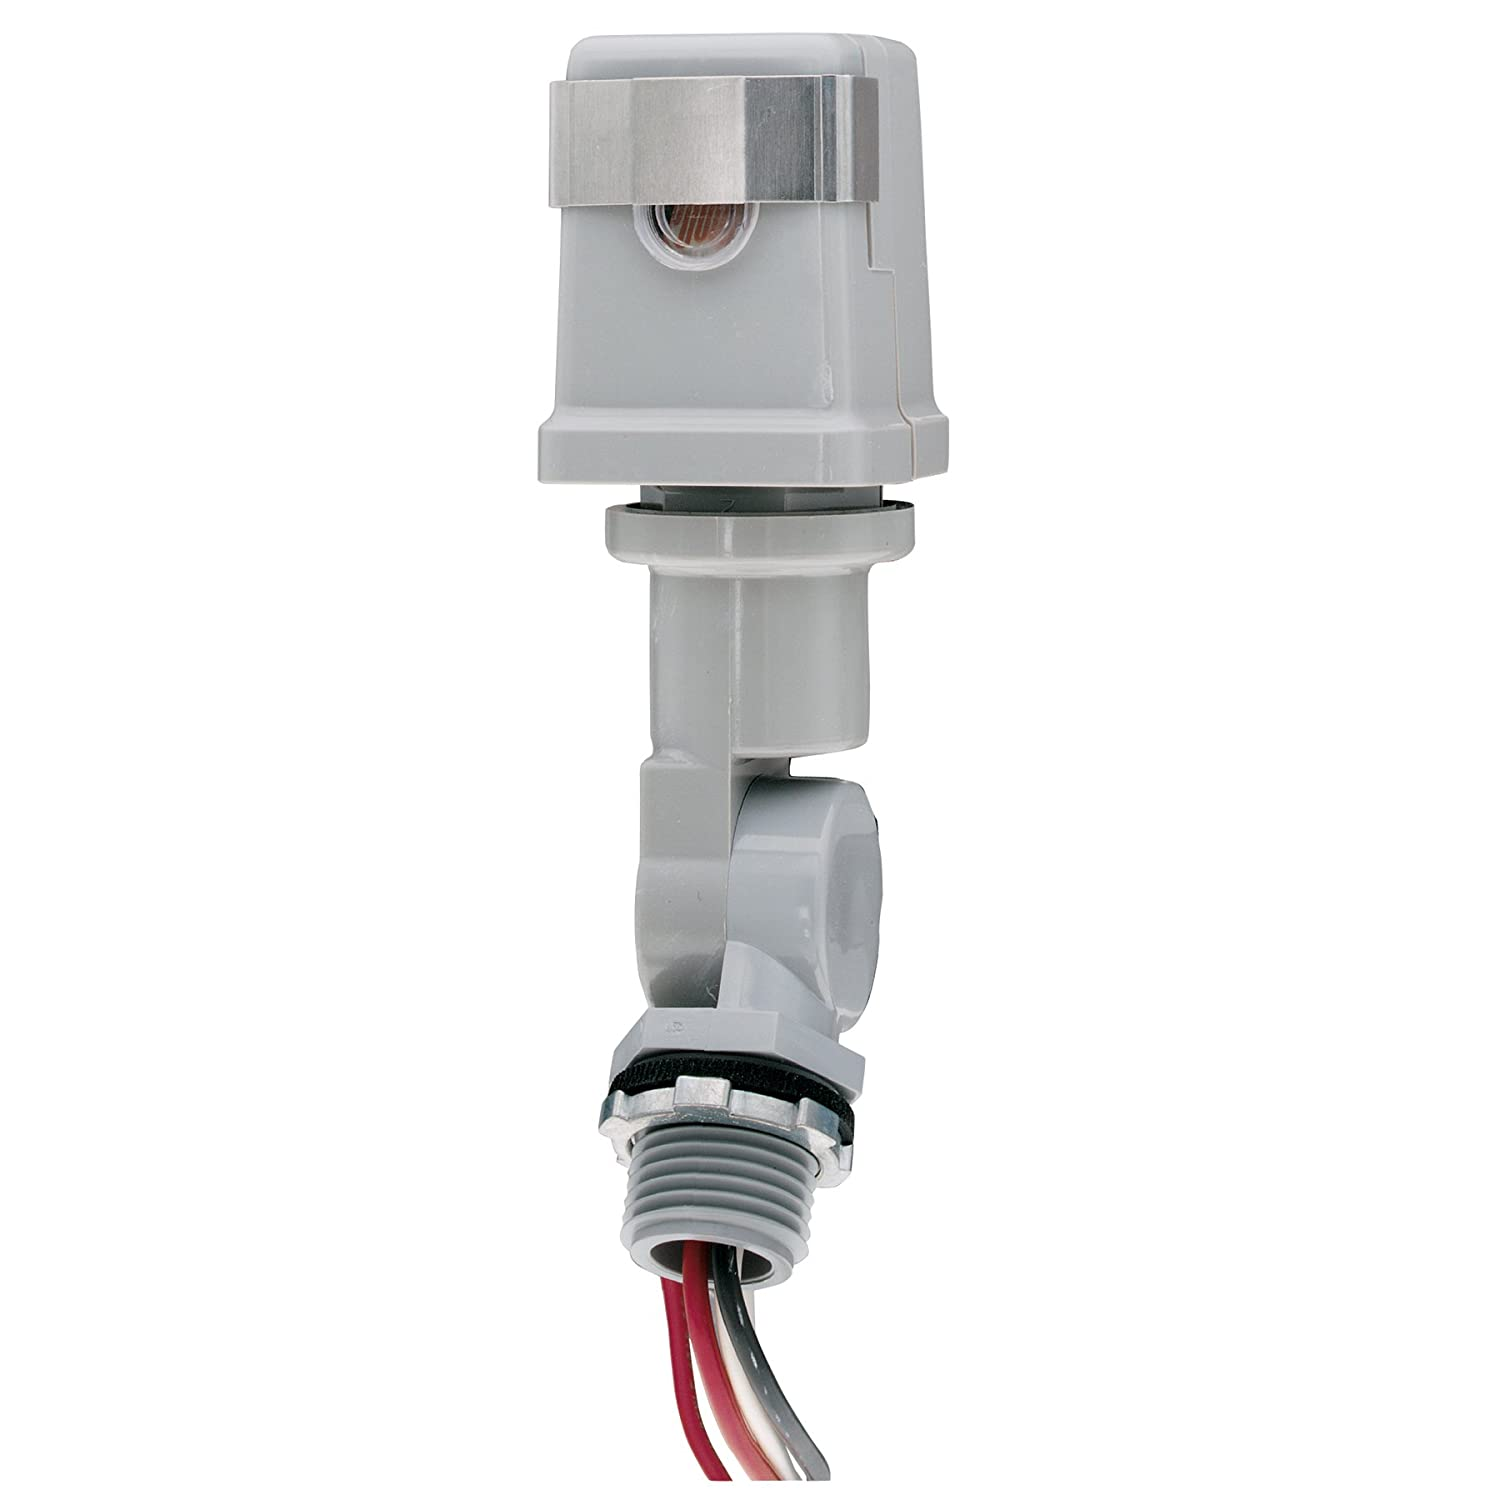 Intermatic K4221C 120 Volt Stem and Swivel Mount Thermal Photocontrol